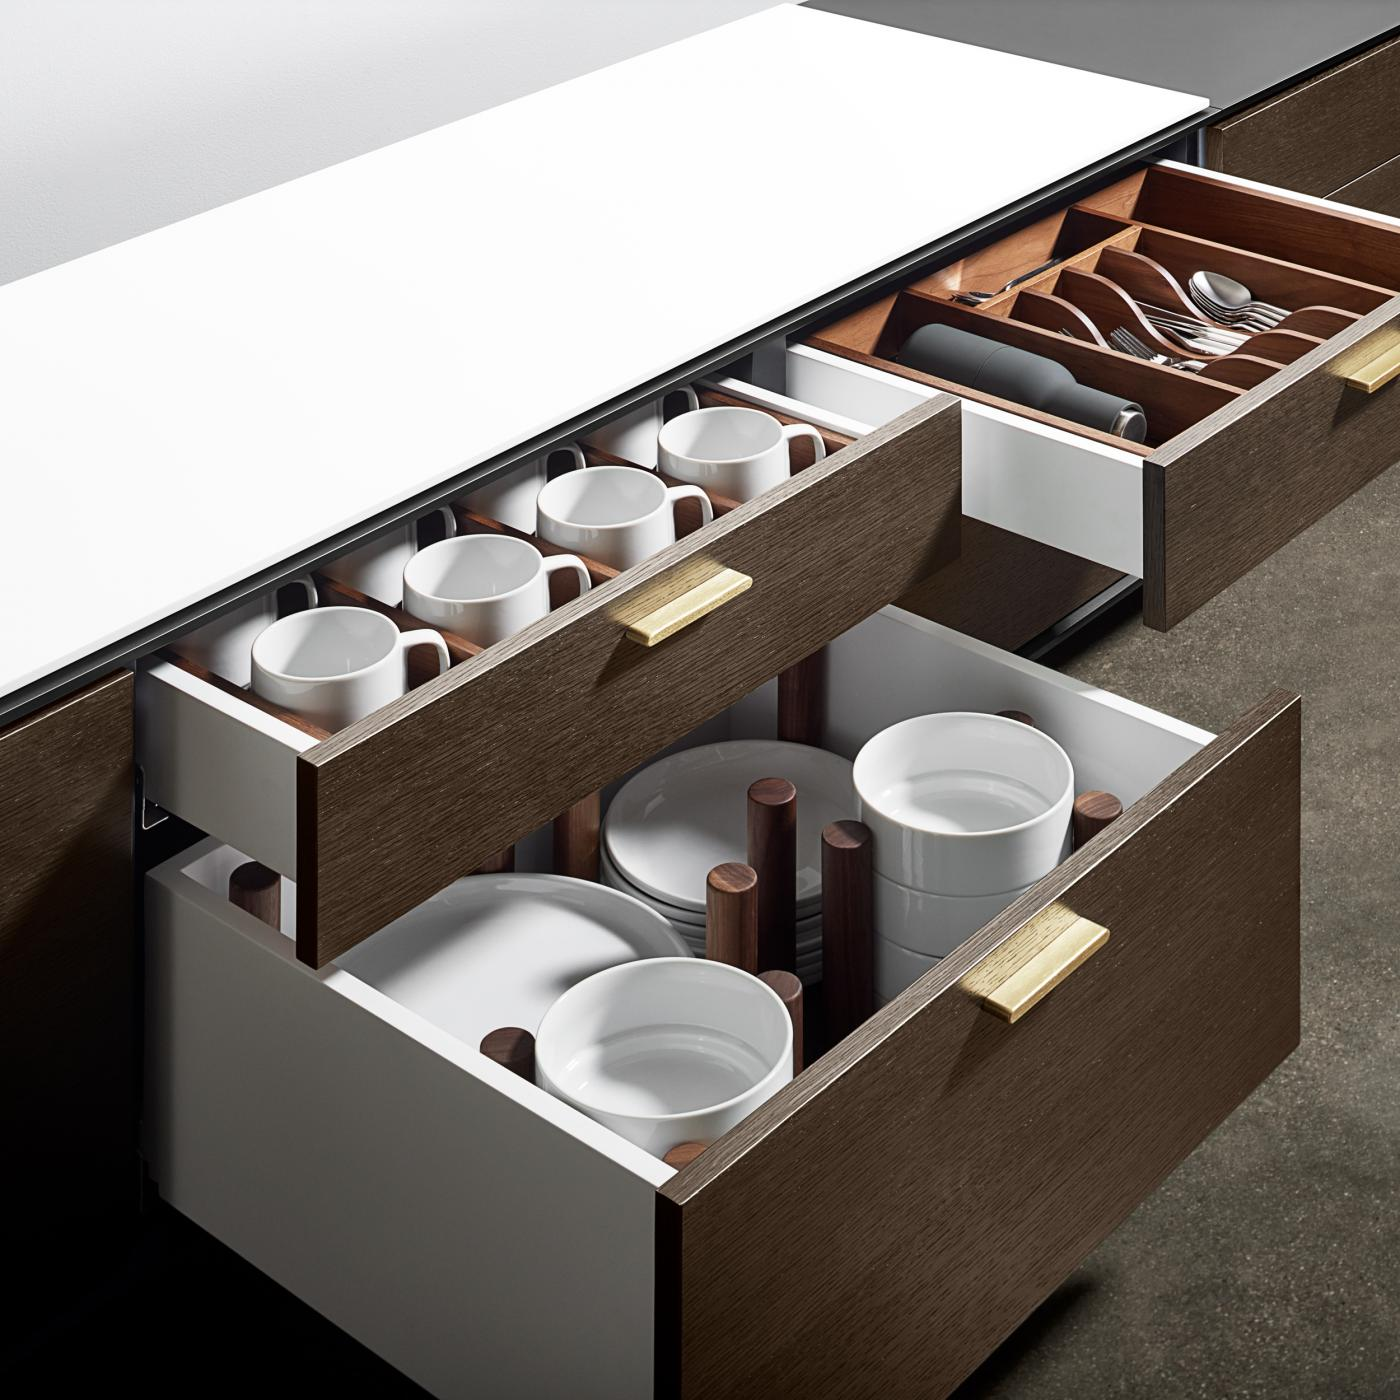 Halo's sideboards are the new standard in conference room storage and service.